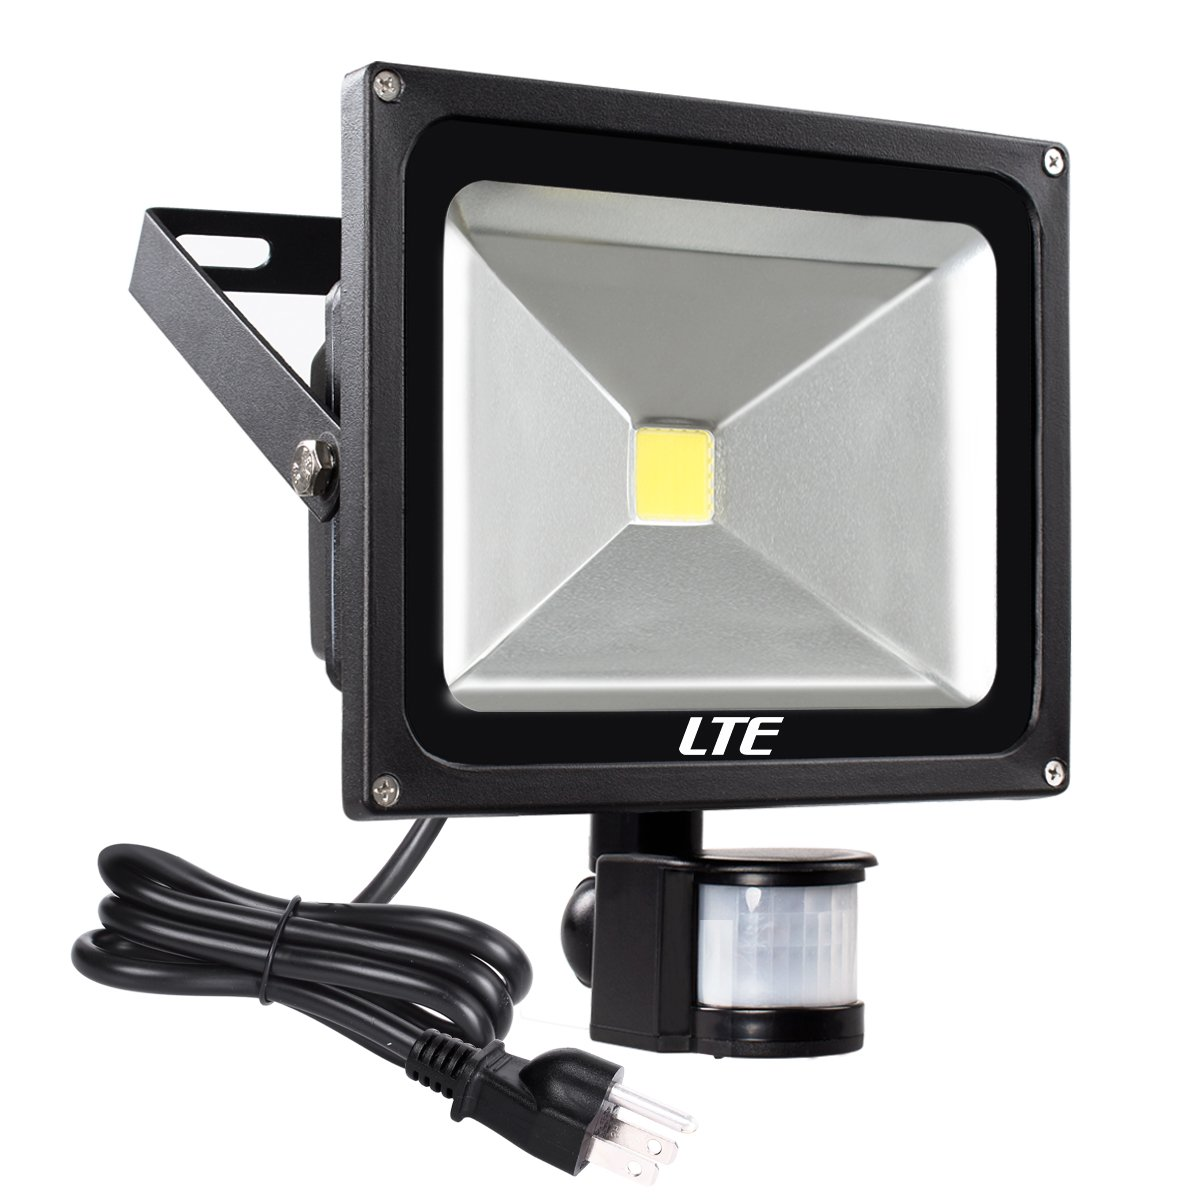 Outdoor Security Lights With Sensor Instructions: LTE 30W Motion Sensor Flood Lights Outdoor Security